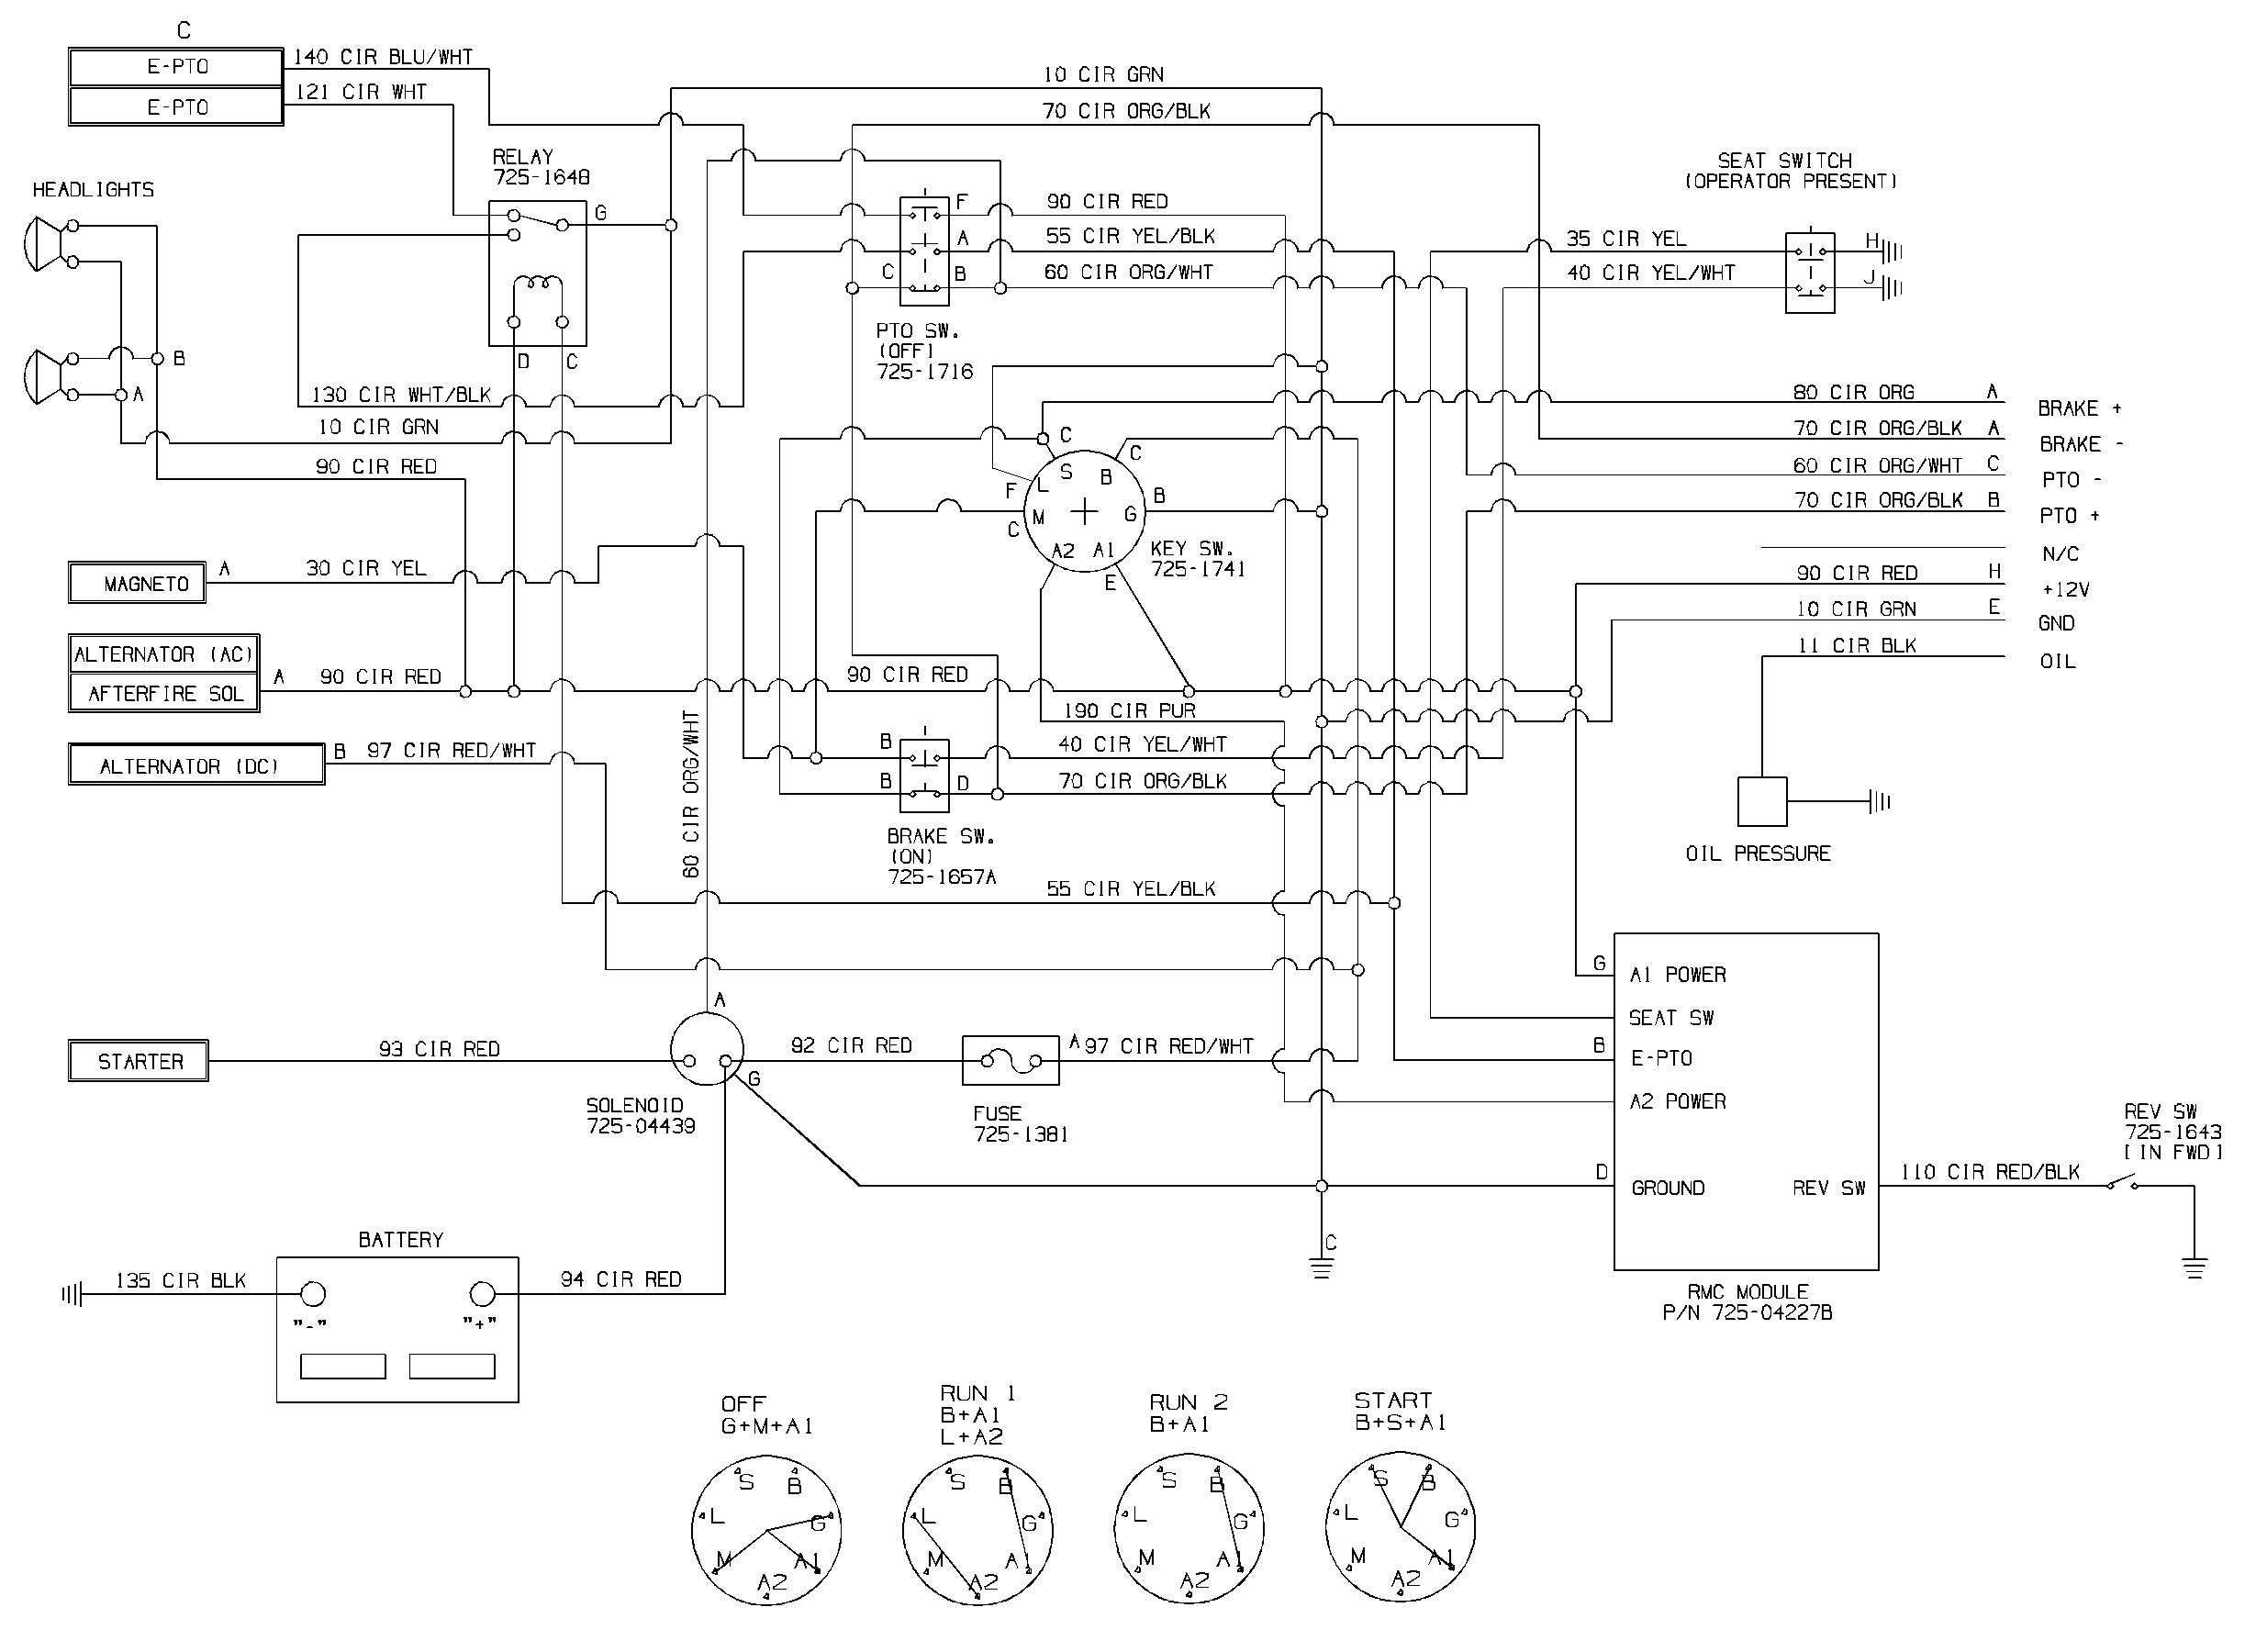 SLTX1050_Schematic wiring diagram for cub cadet zero turn the wiring diagram gt2550 wiring diagram at gsmx.co